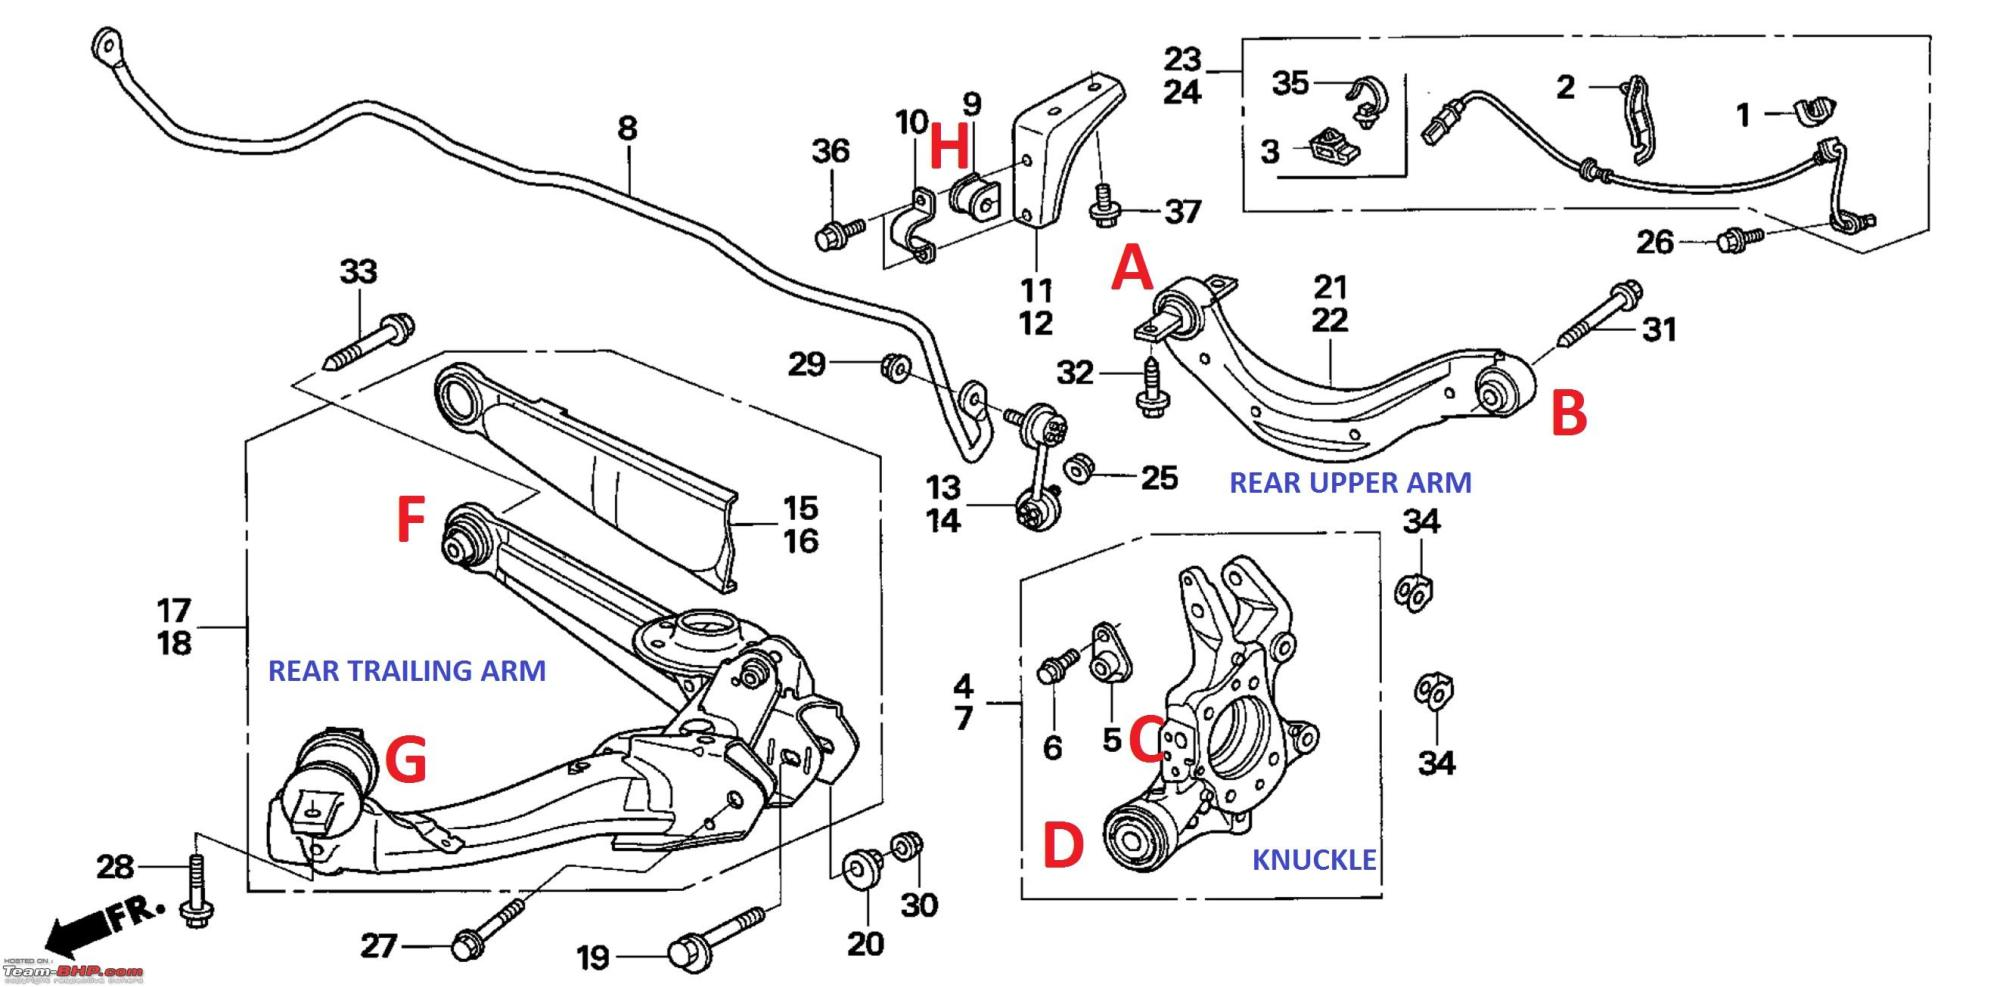 hight resolution of pictorial rear suspension check bush replacement on my honda civic rear suspension